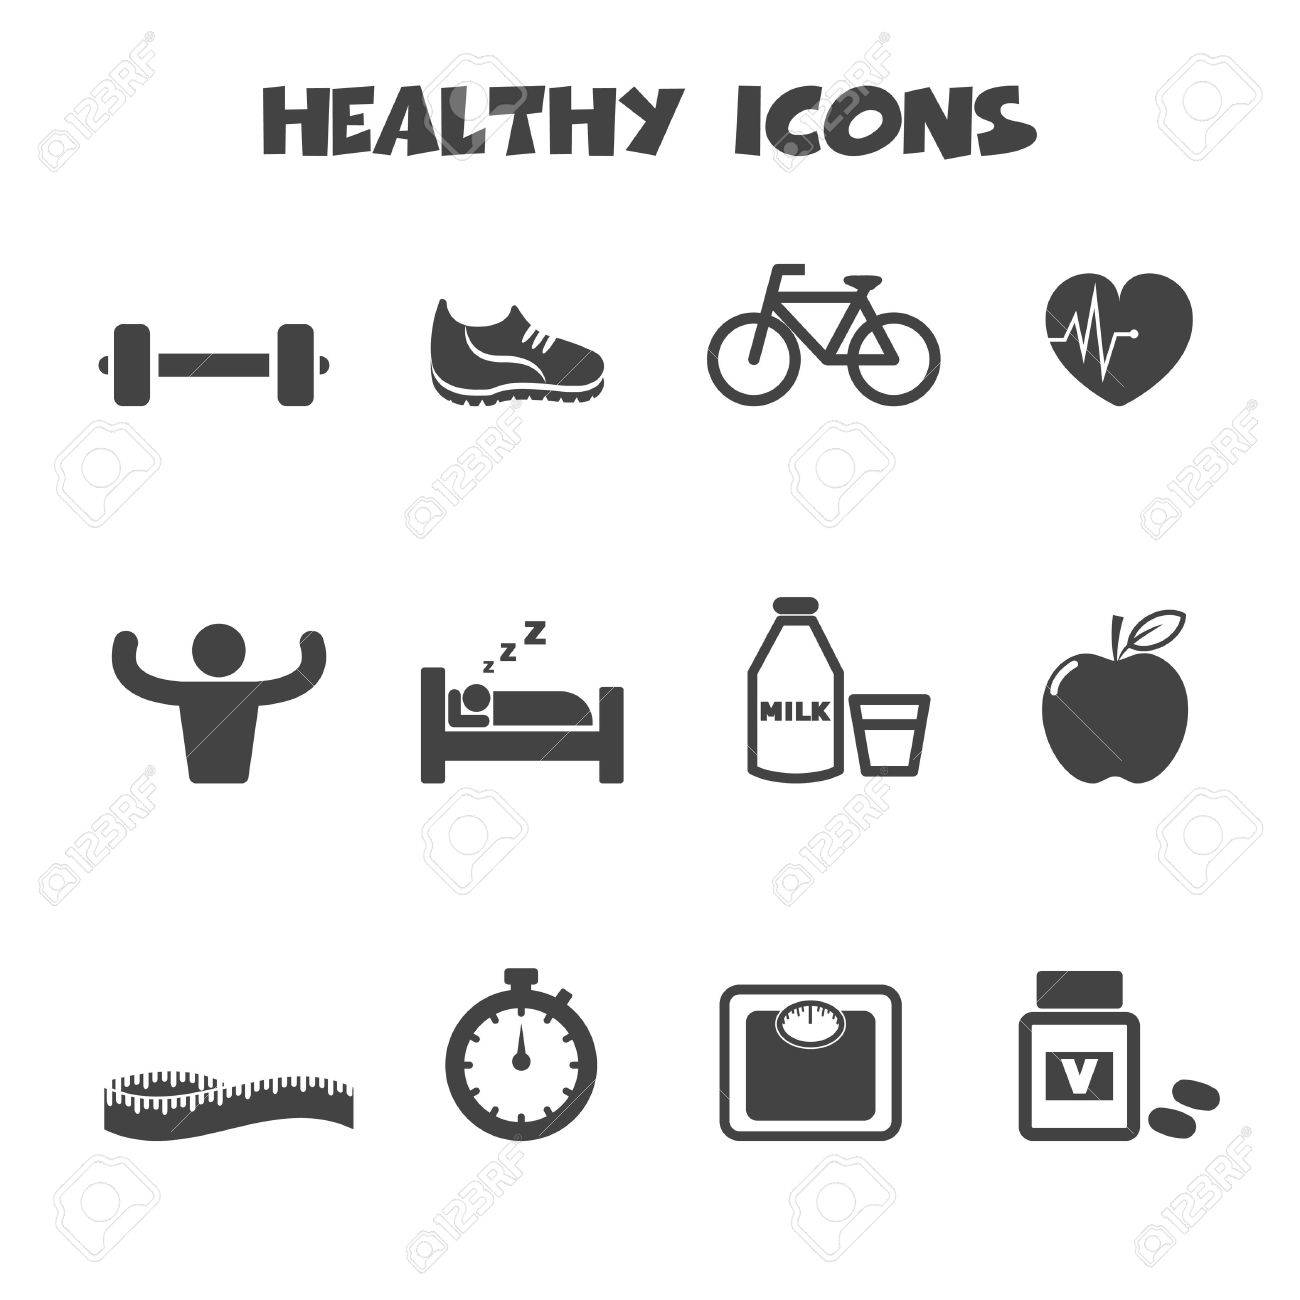 Healthy icons symbols royalty free cliparts vectors and stock healthy icons symbols stock vector 26618701 biocorpaavc Images